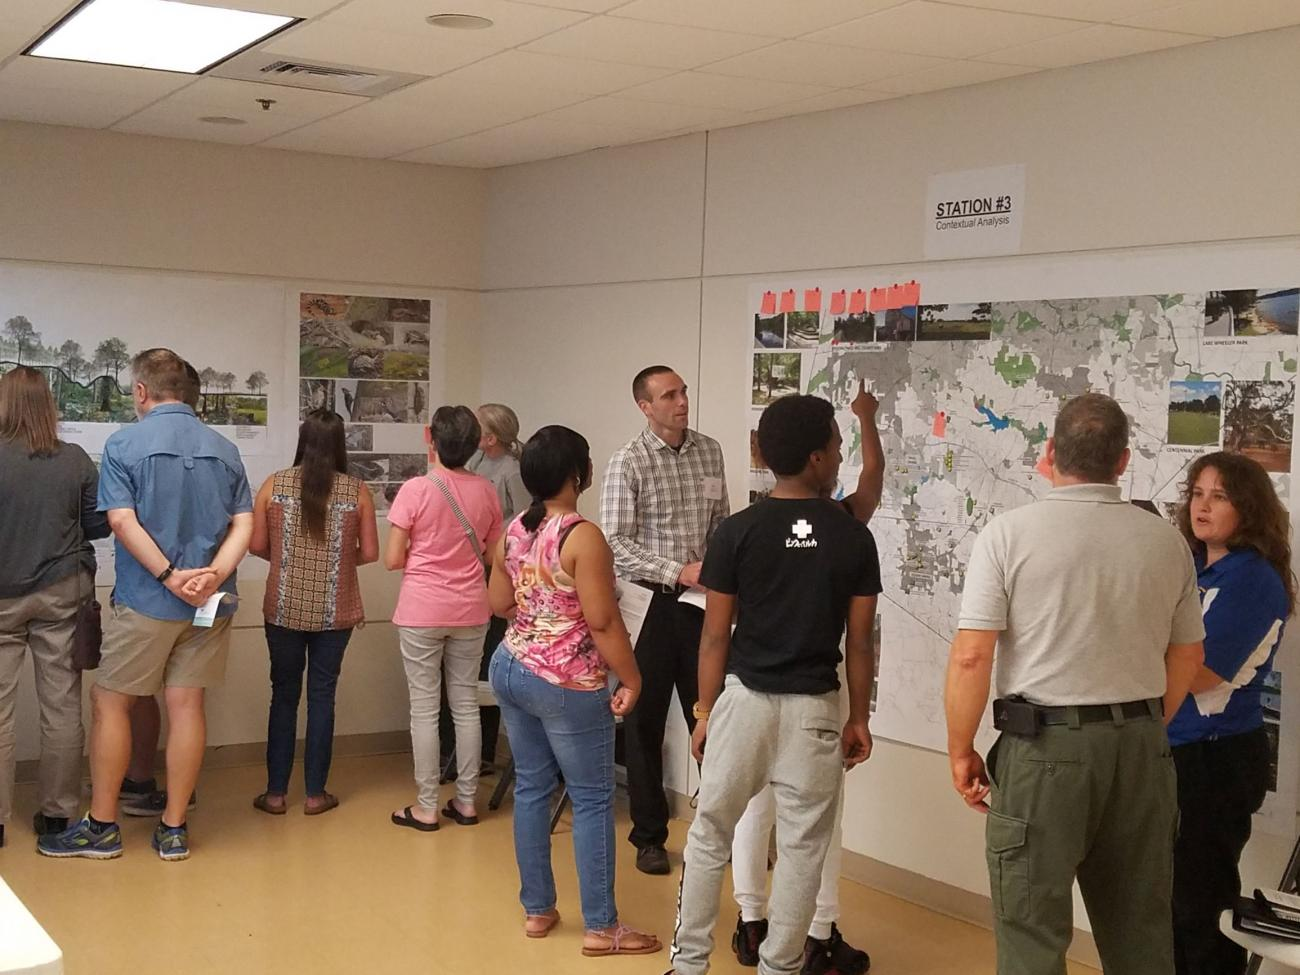 staff and public discuss projects in public meeting